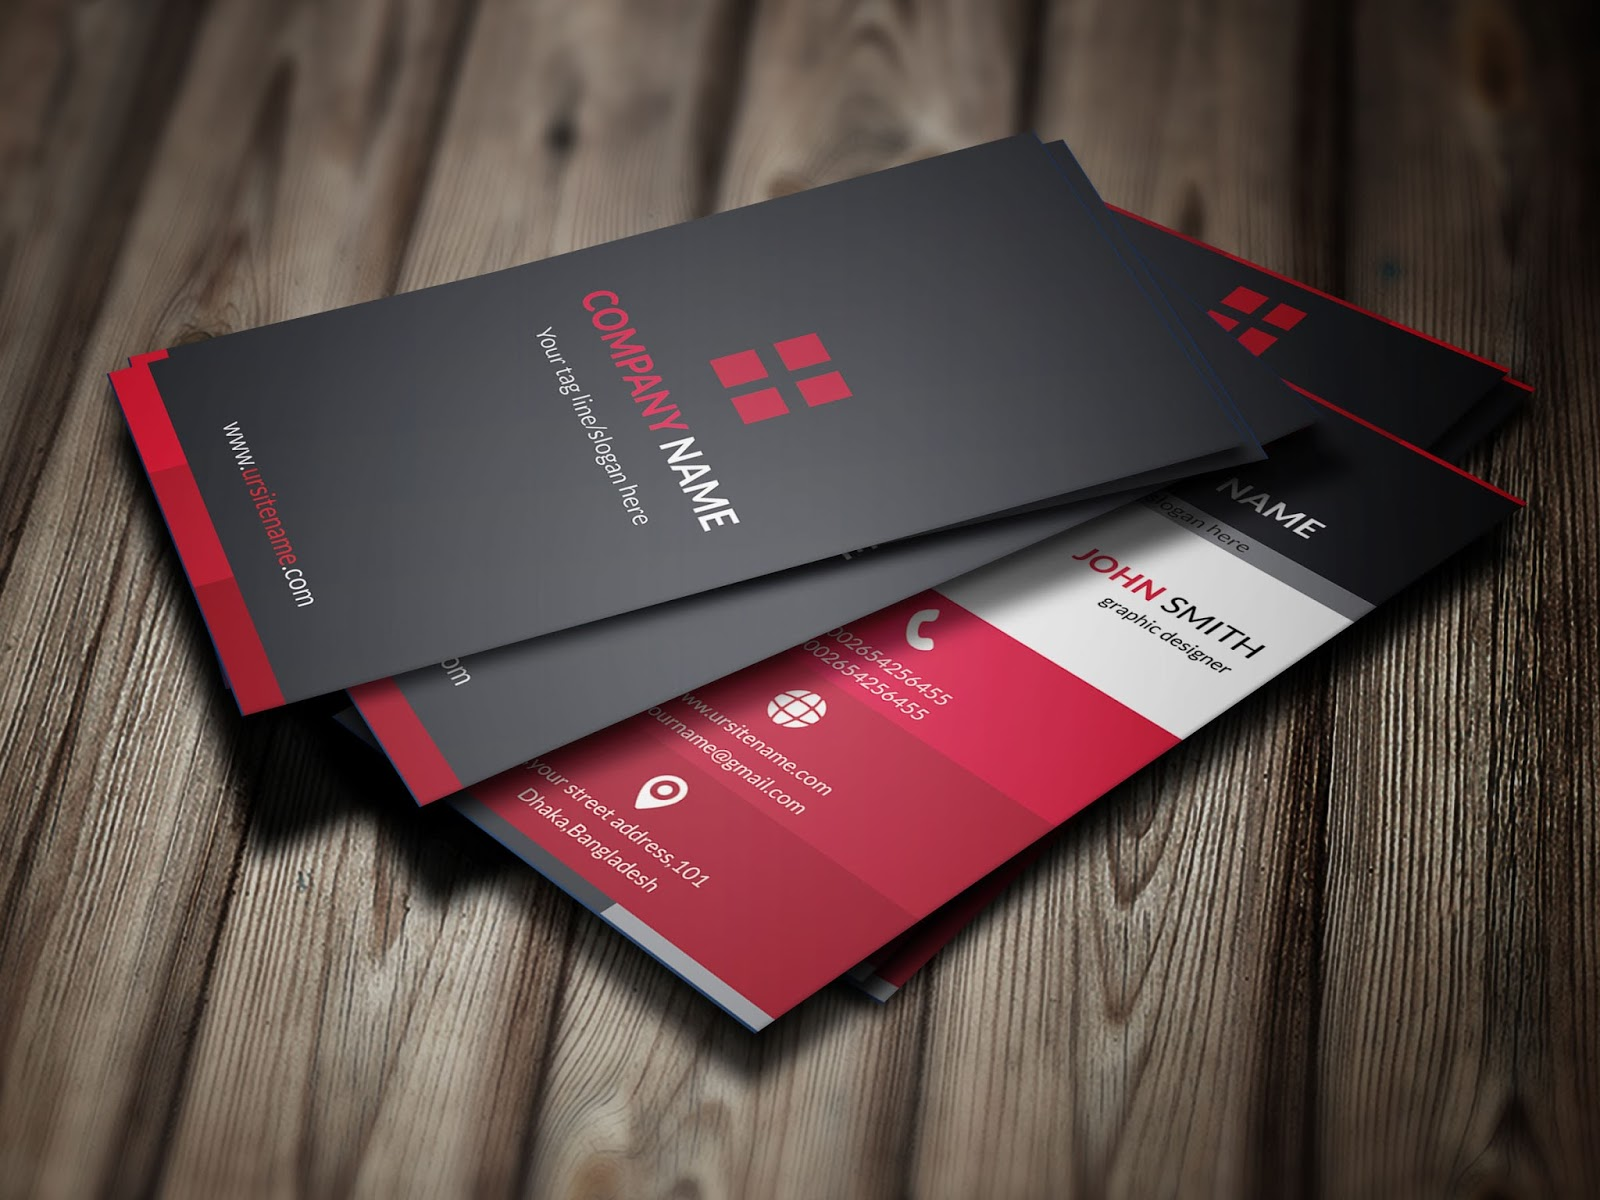 Business card design in adobe photoshop ajoy saha business card design in adobe photoshop reheart Images